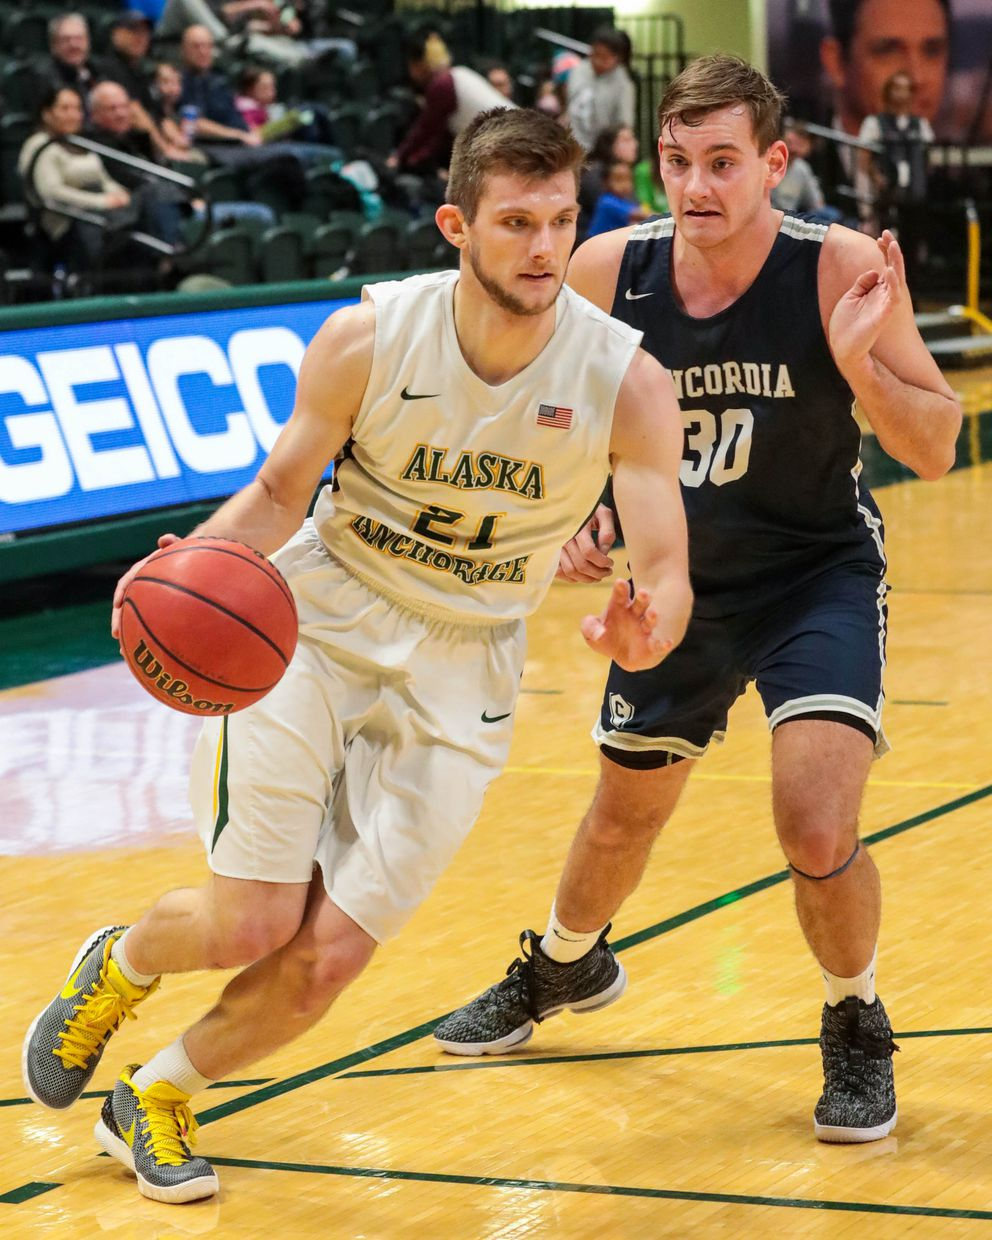 UAA's Matt Seymour plays in a game against Concordia on Saturday, Jan. 5, 2019 at the Alaska Airlines Center. UAA won 75-66. (Loren Holmes / ADN)